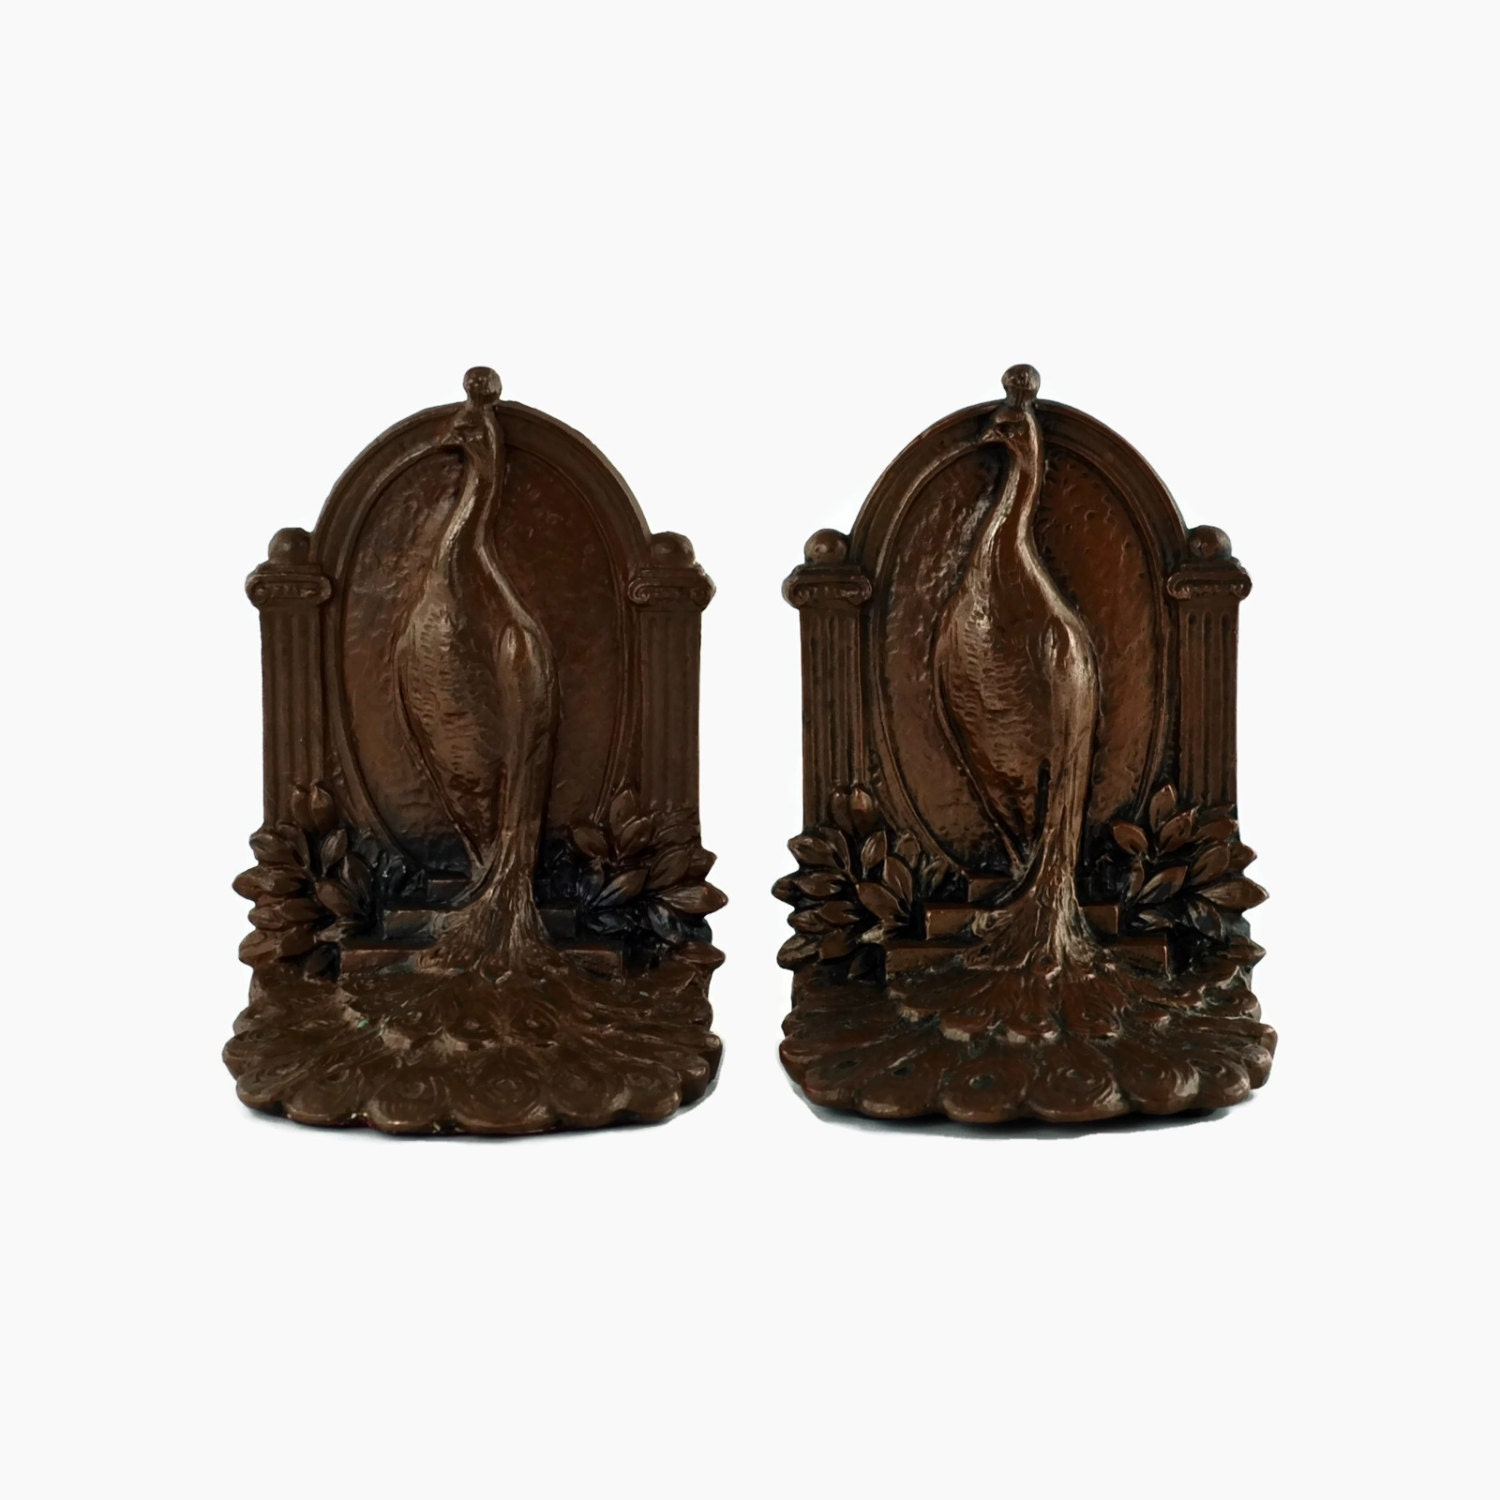 Antique weidlich brothers peacock bookends with a bronze - Antique brass bookends ...